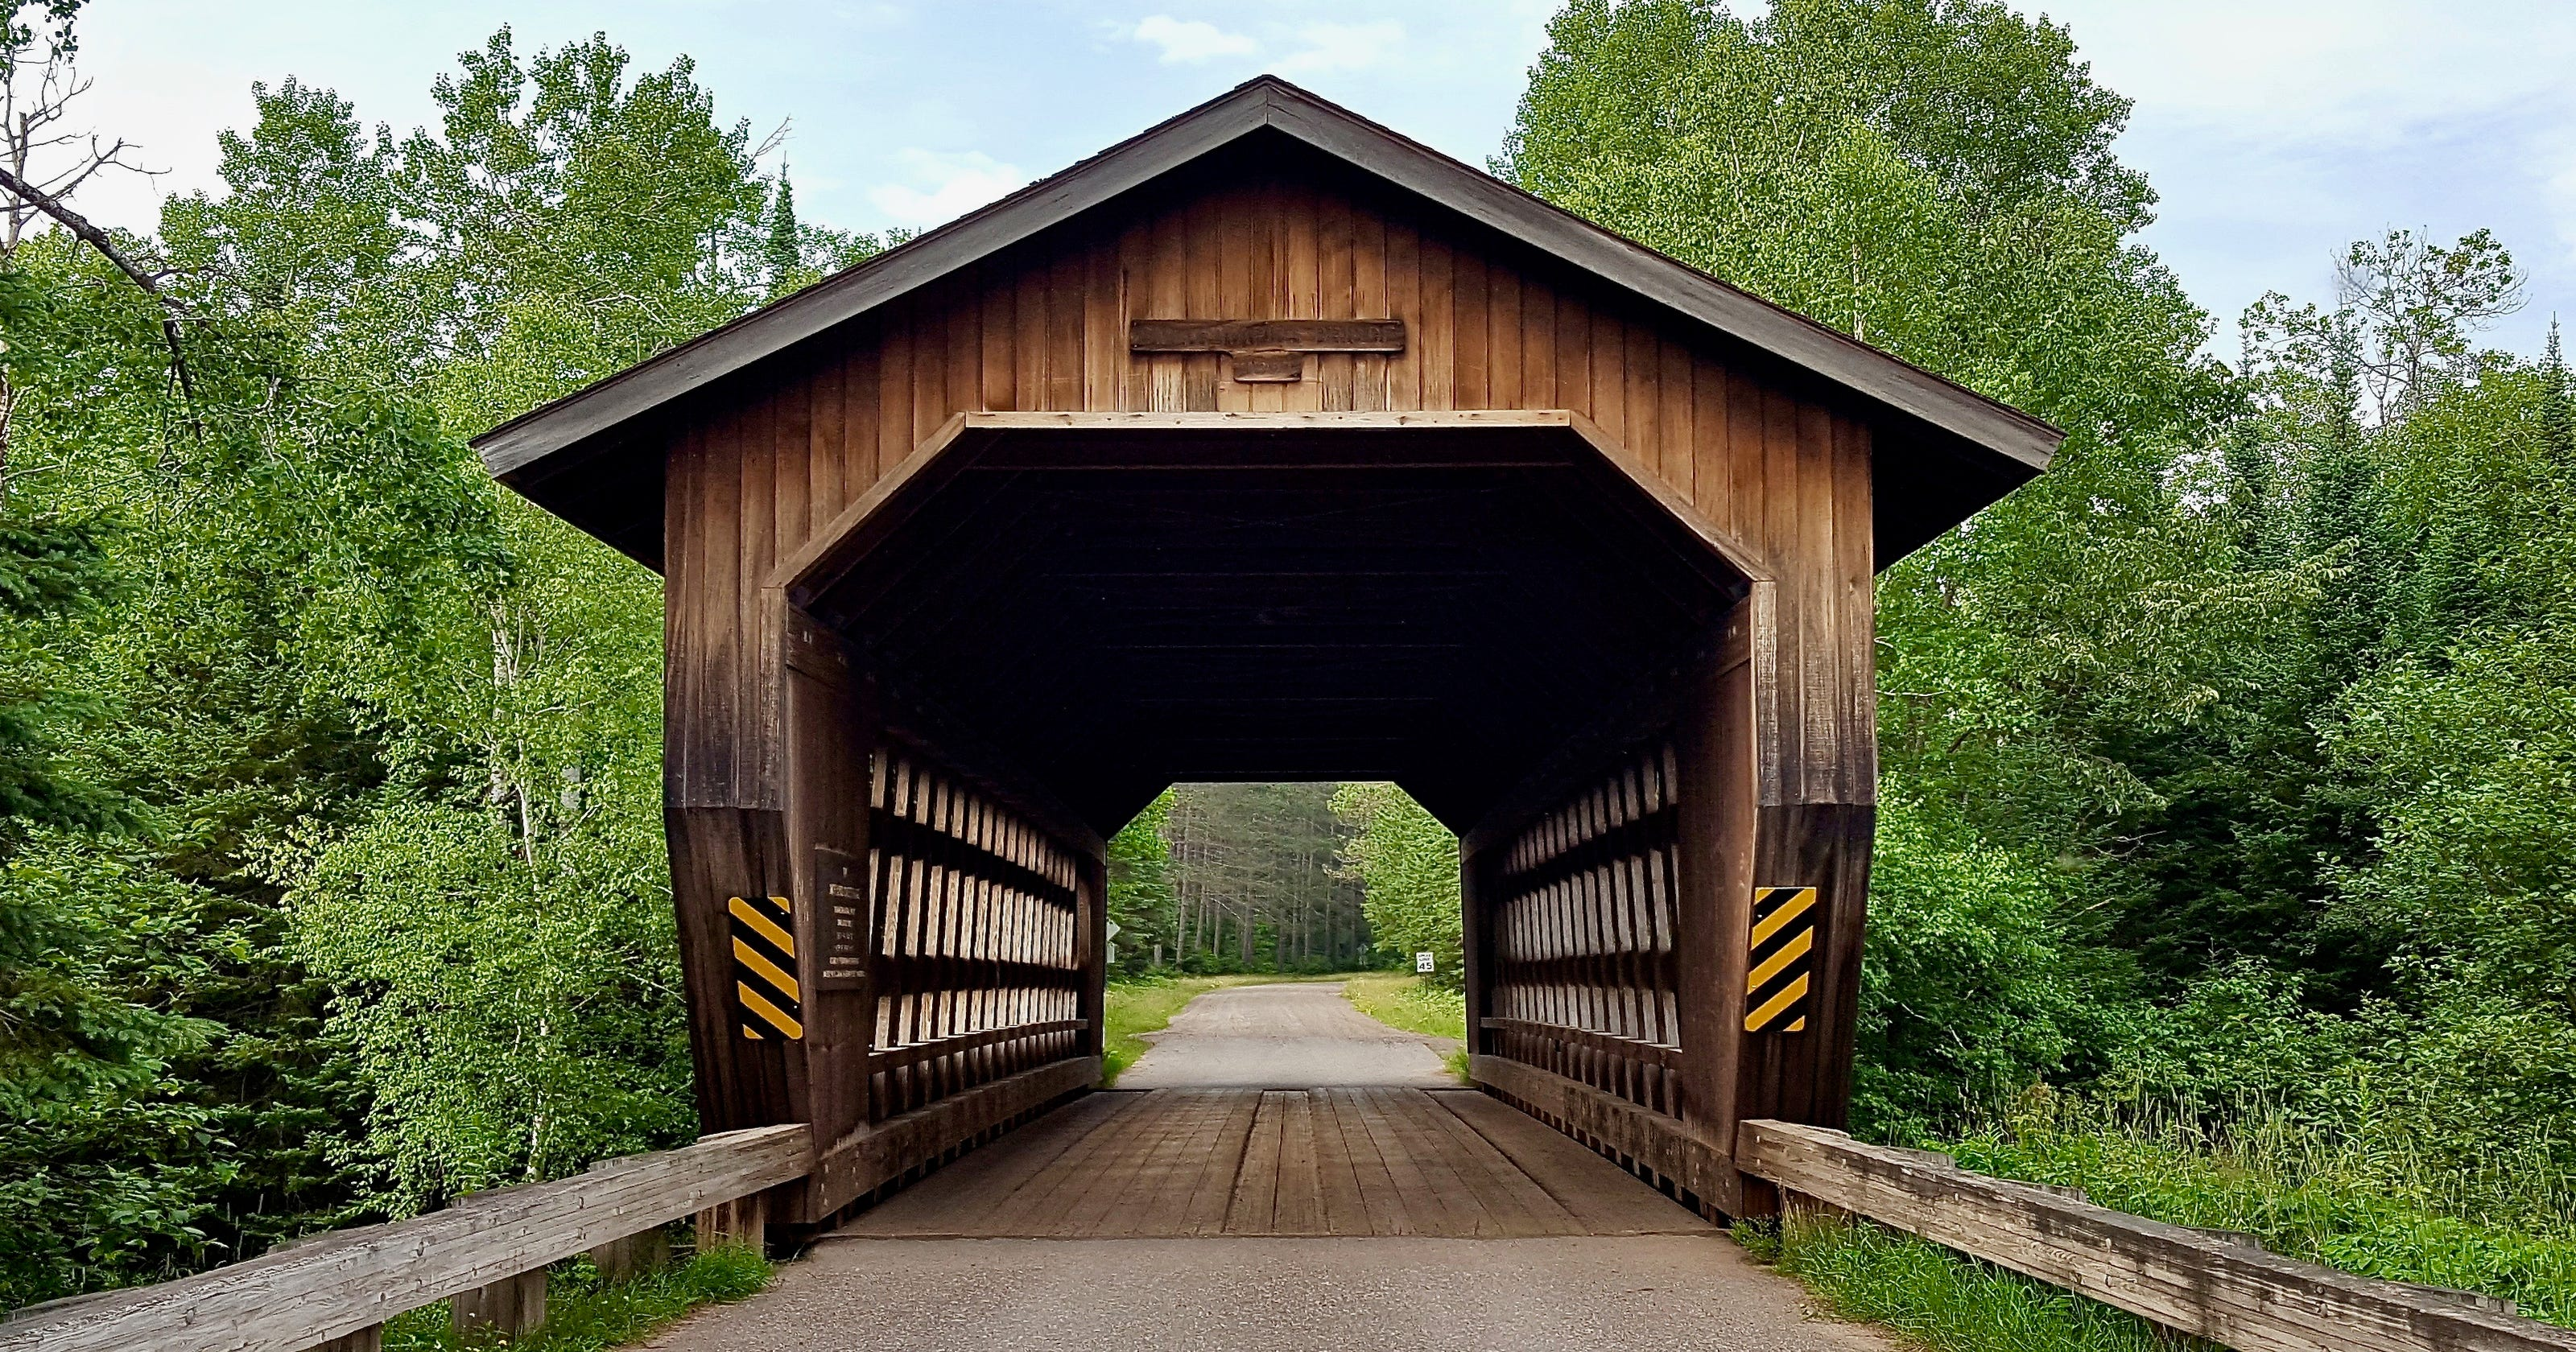 8 Covered Bridges To Visit In Wisconsin